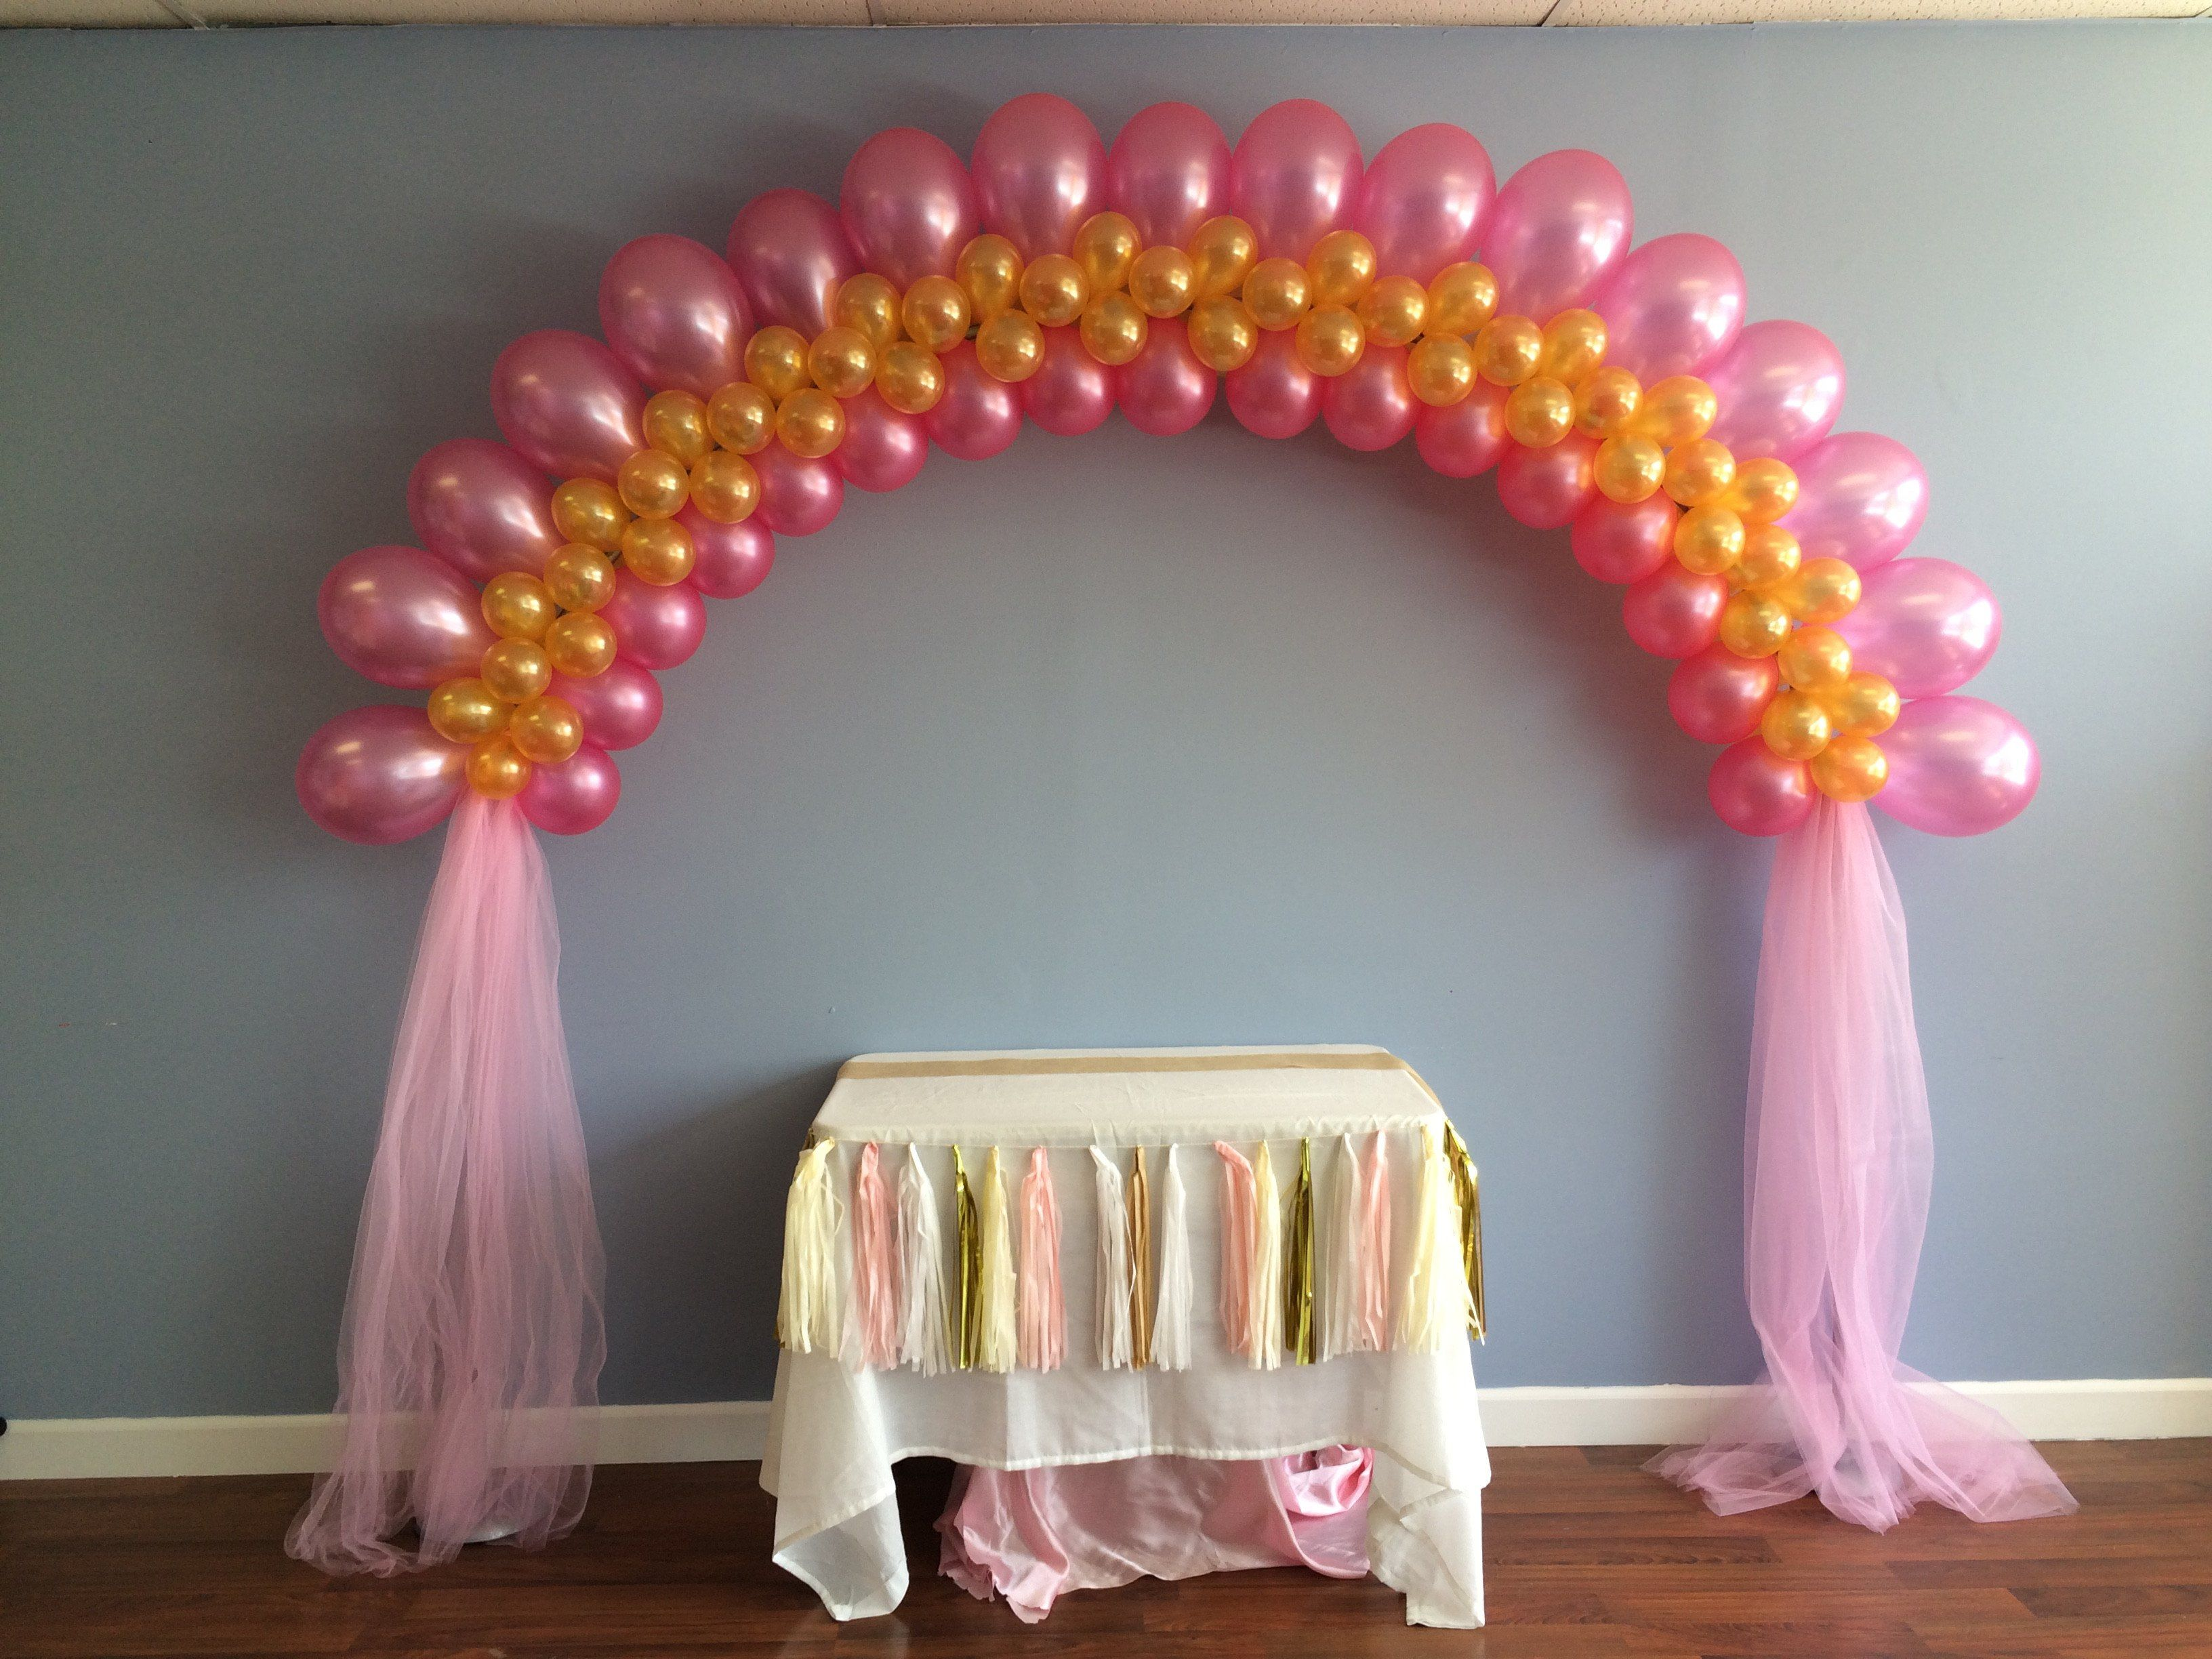 how to do a balloon arch at home